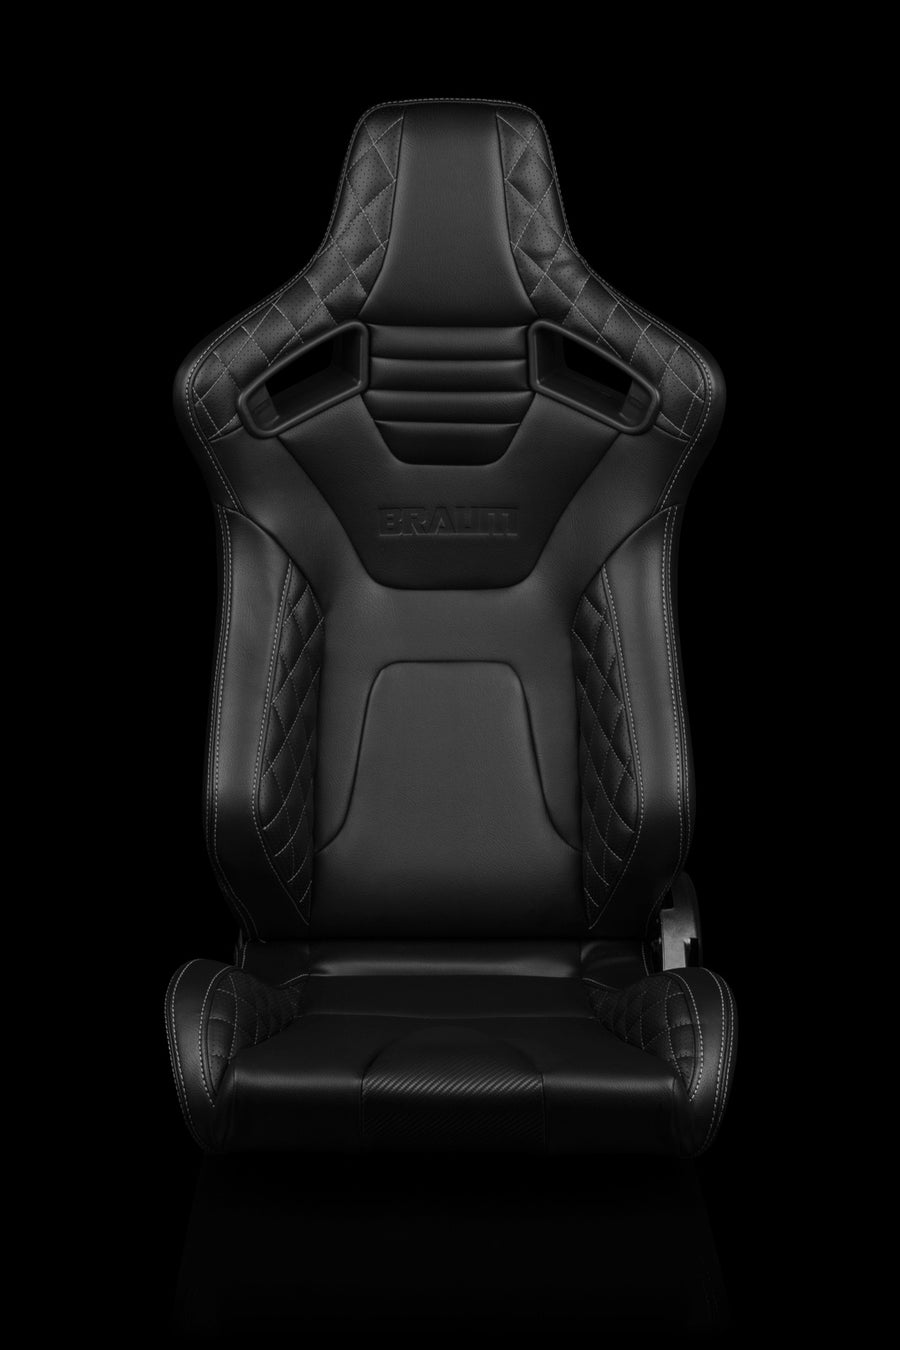 Image of Version 1 Diamond Edition - Elite X Series - Braum Racing Seats (Pair)